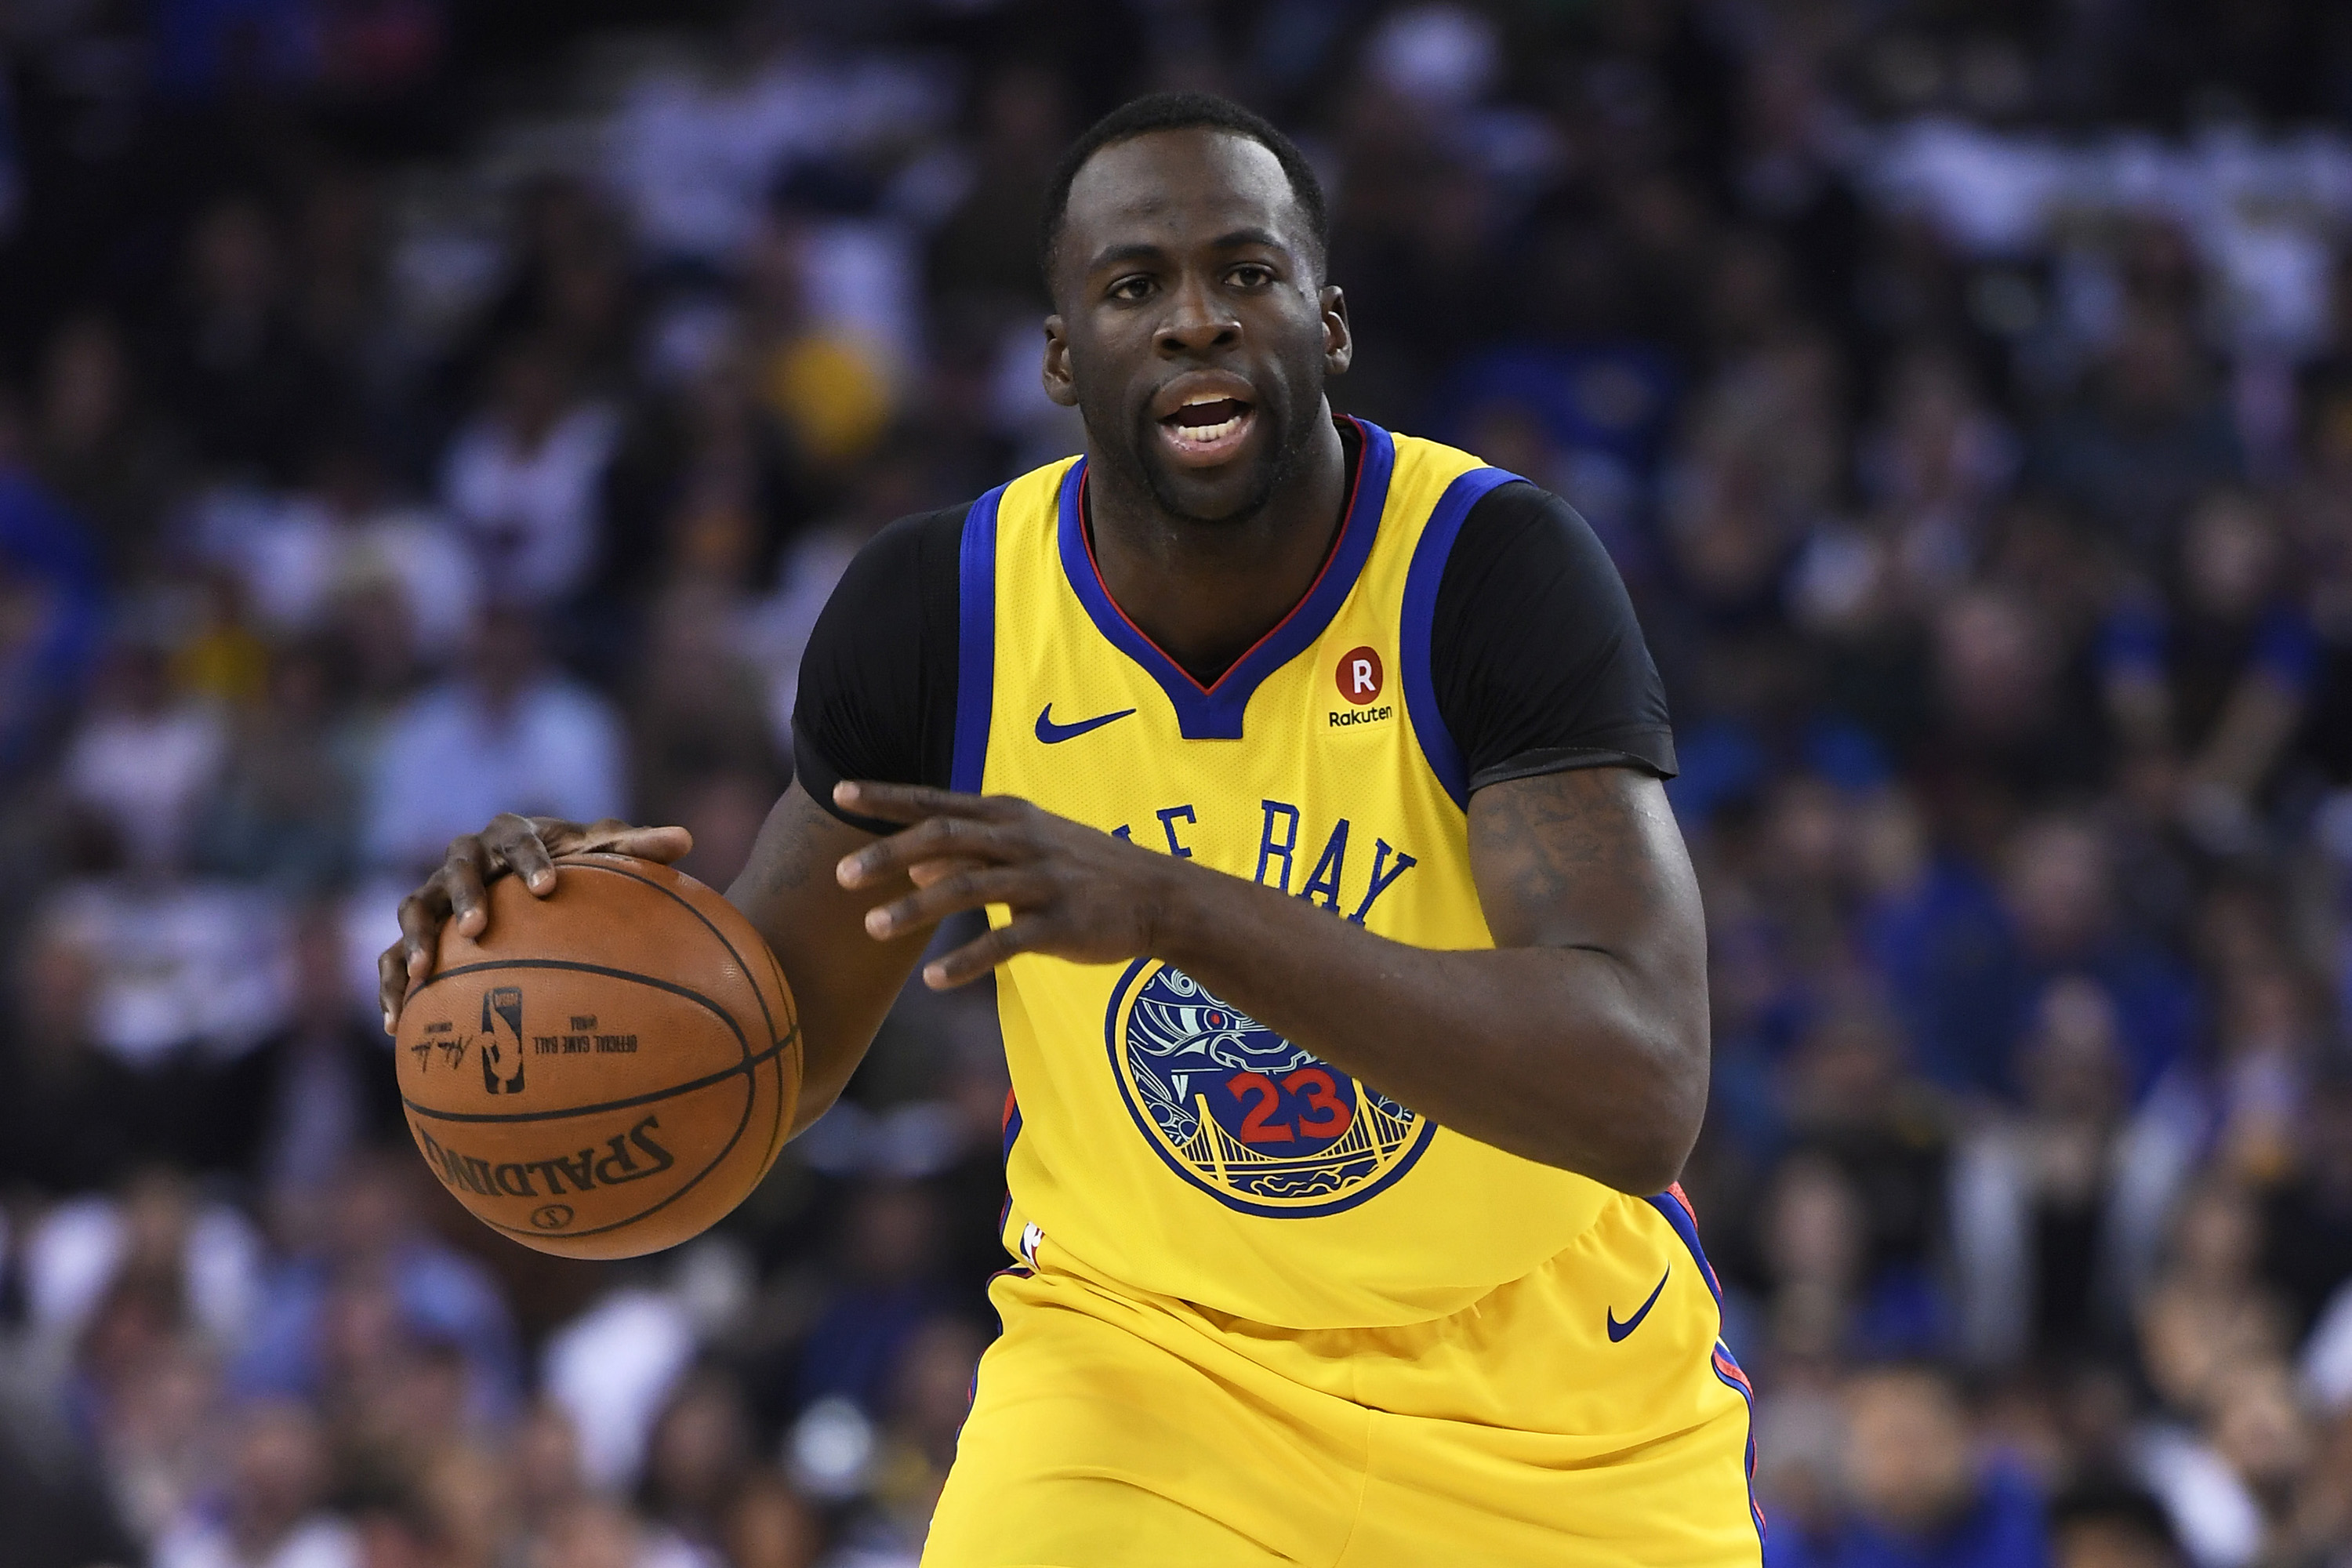 March 8, 2018 - Oakland, CA, USA - In a March 8, 2018, file image, the Golden State Warriors' Draymond Green looks to pass against the San Antonio Spurs at the Oracle Arena in Oakland, Calif. On Saturday, March 17, 2018, in Phoenix, Green scored 25 points with 11 rebounds in a 124-109 win against the Suns. (Credit Image: © Jose Carlos Fajardo/TNS via ZUMA Wire)